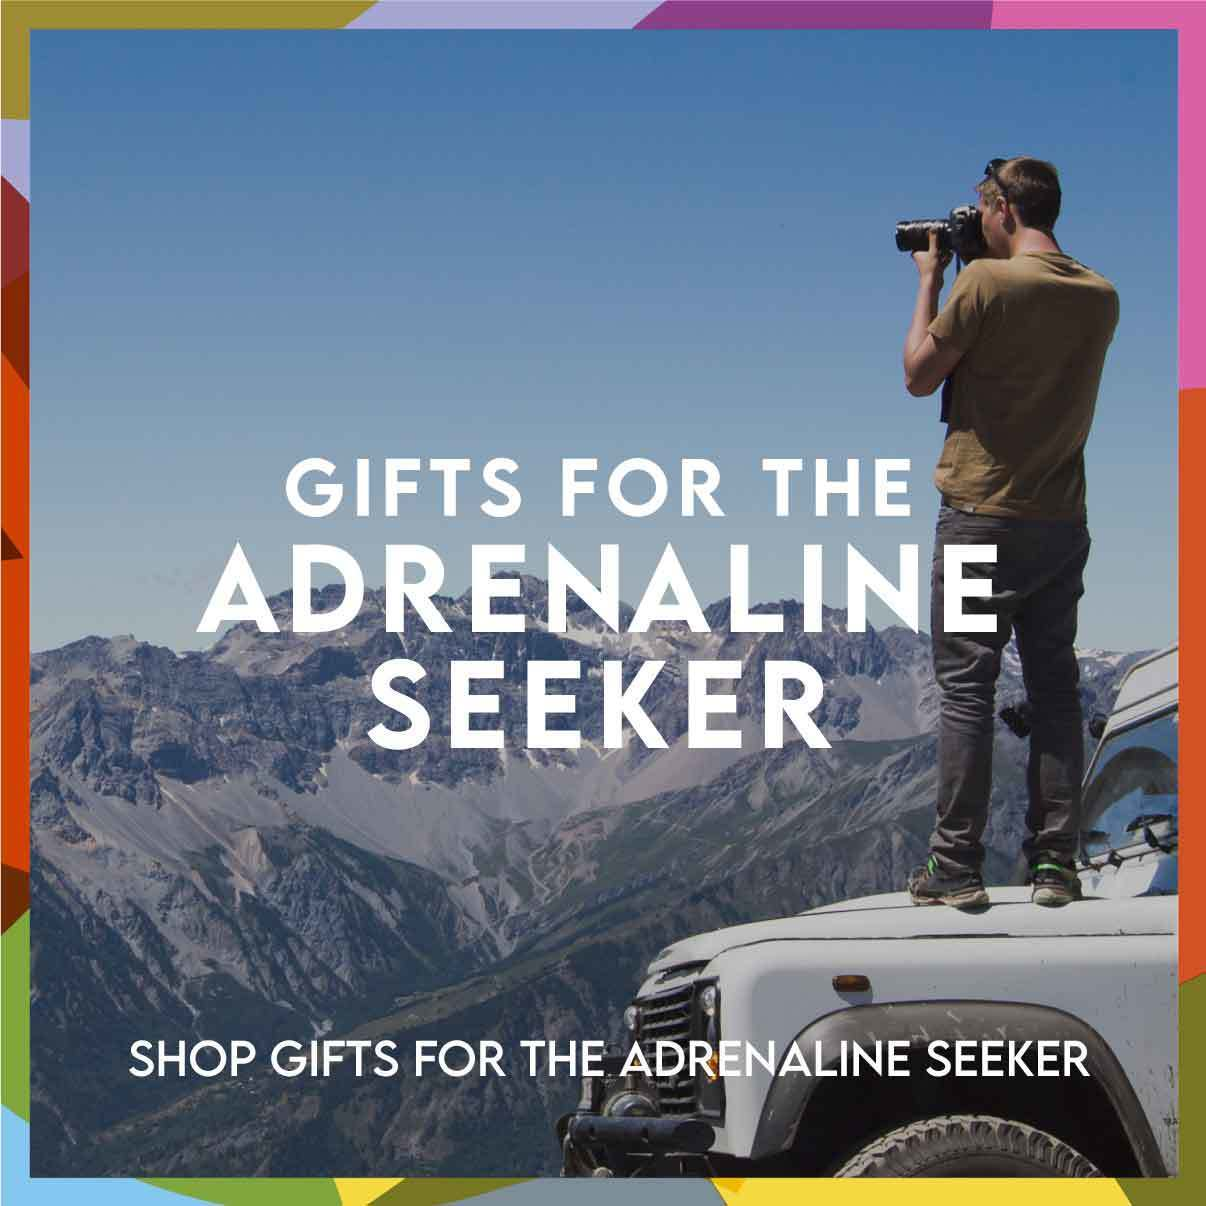 Gifts for the adrenaline seeker